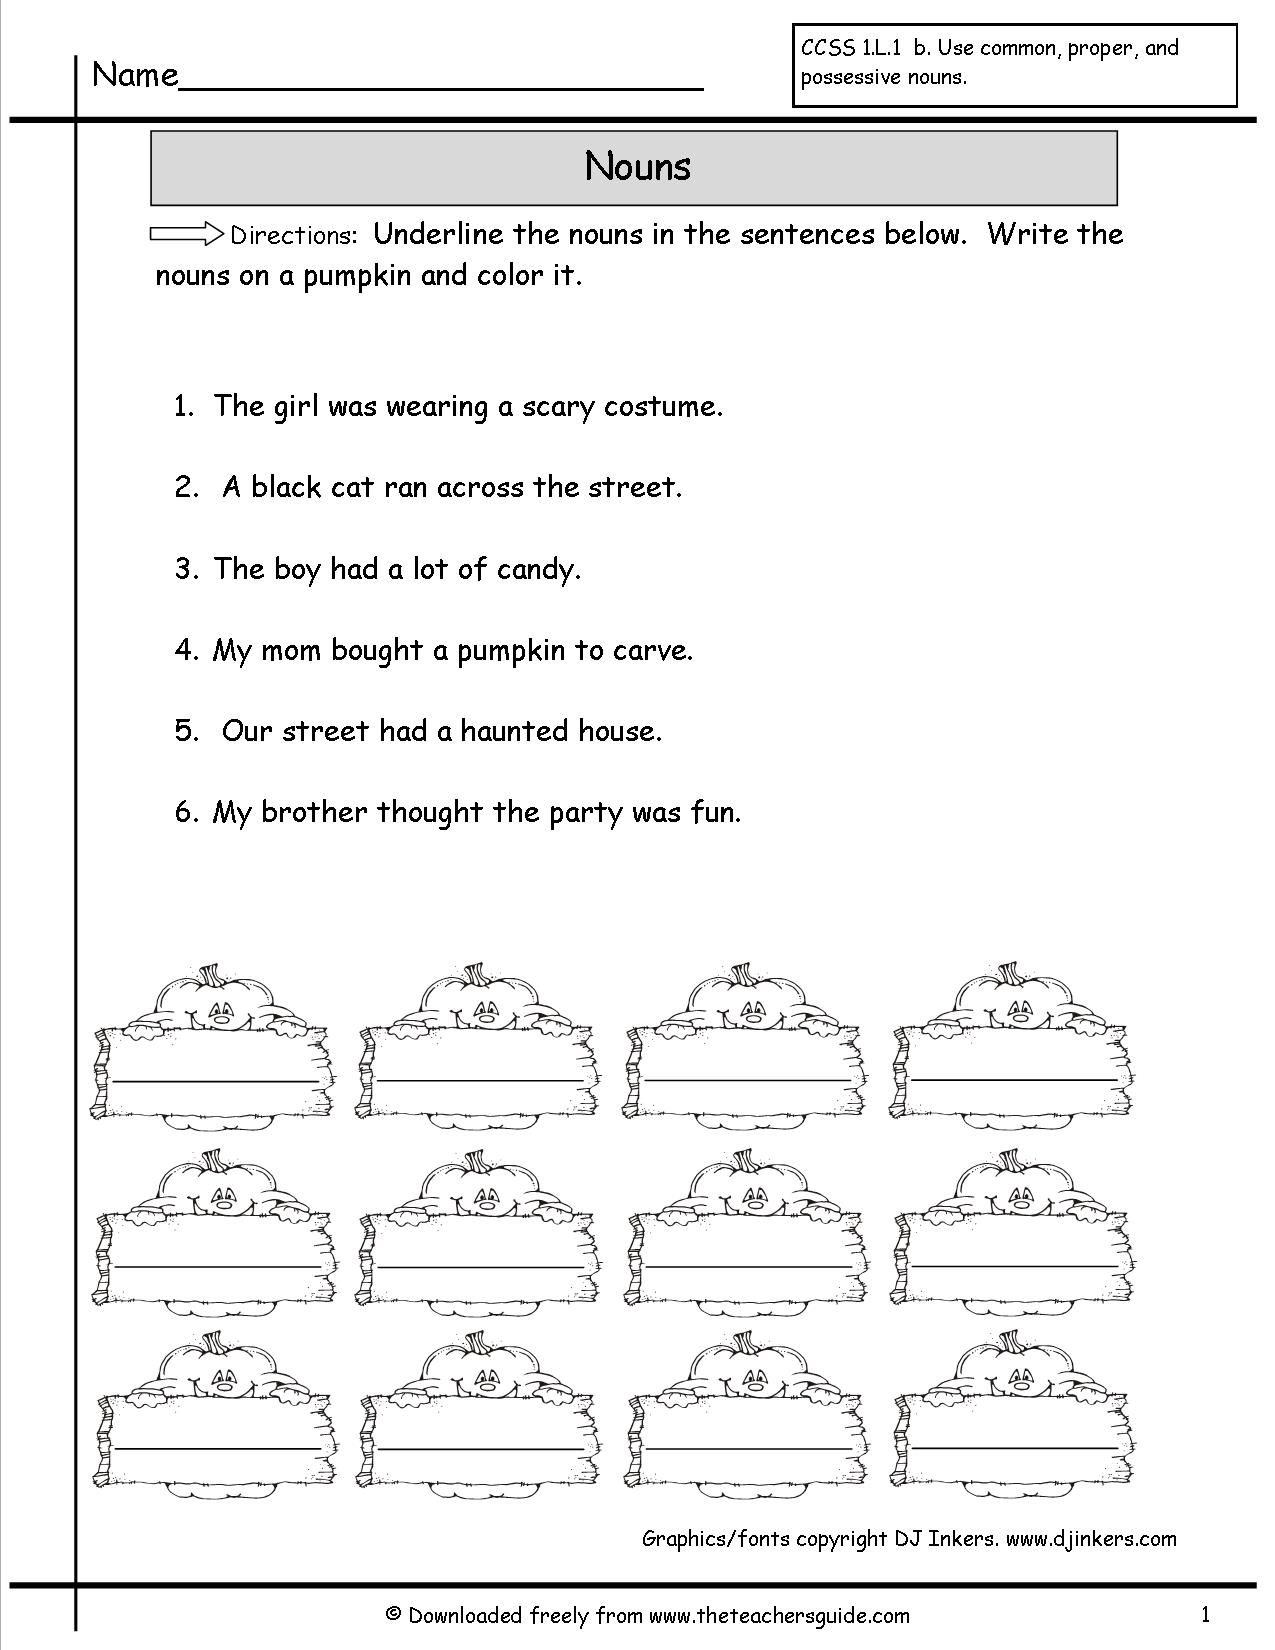 Nouns Color Pumpkins Worksheet